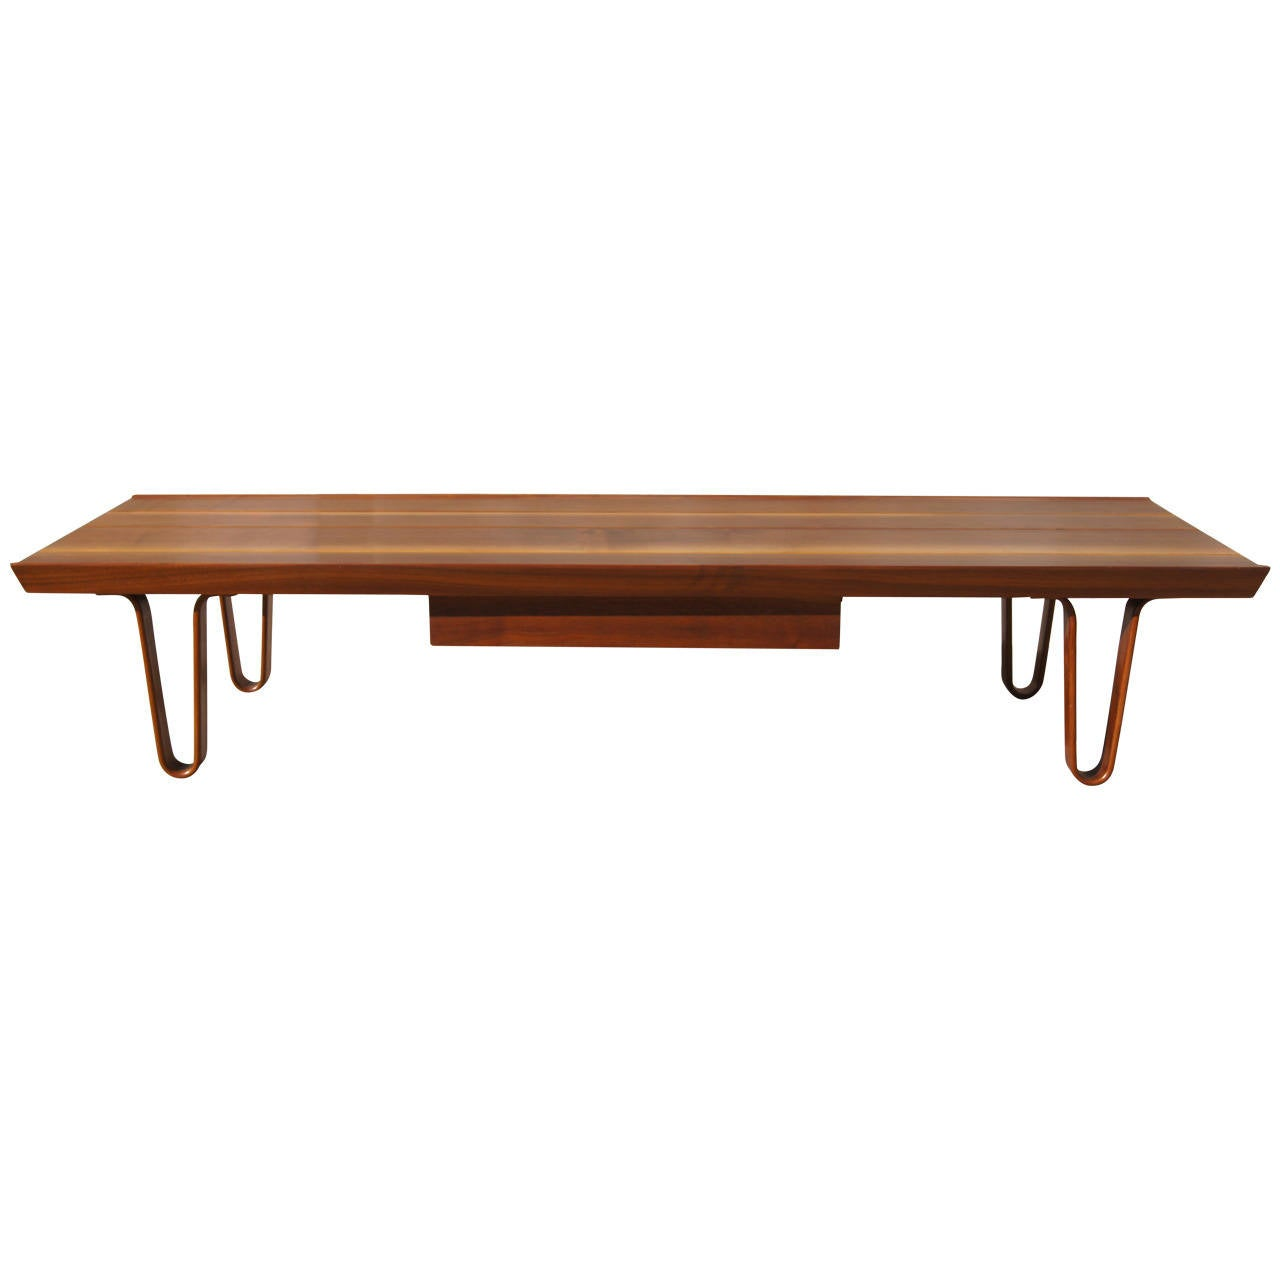 Long John Coffee Table By Edward Wormley For Dunbar At 1stdibs